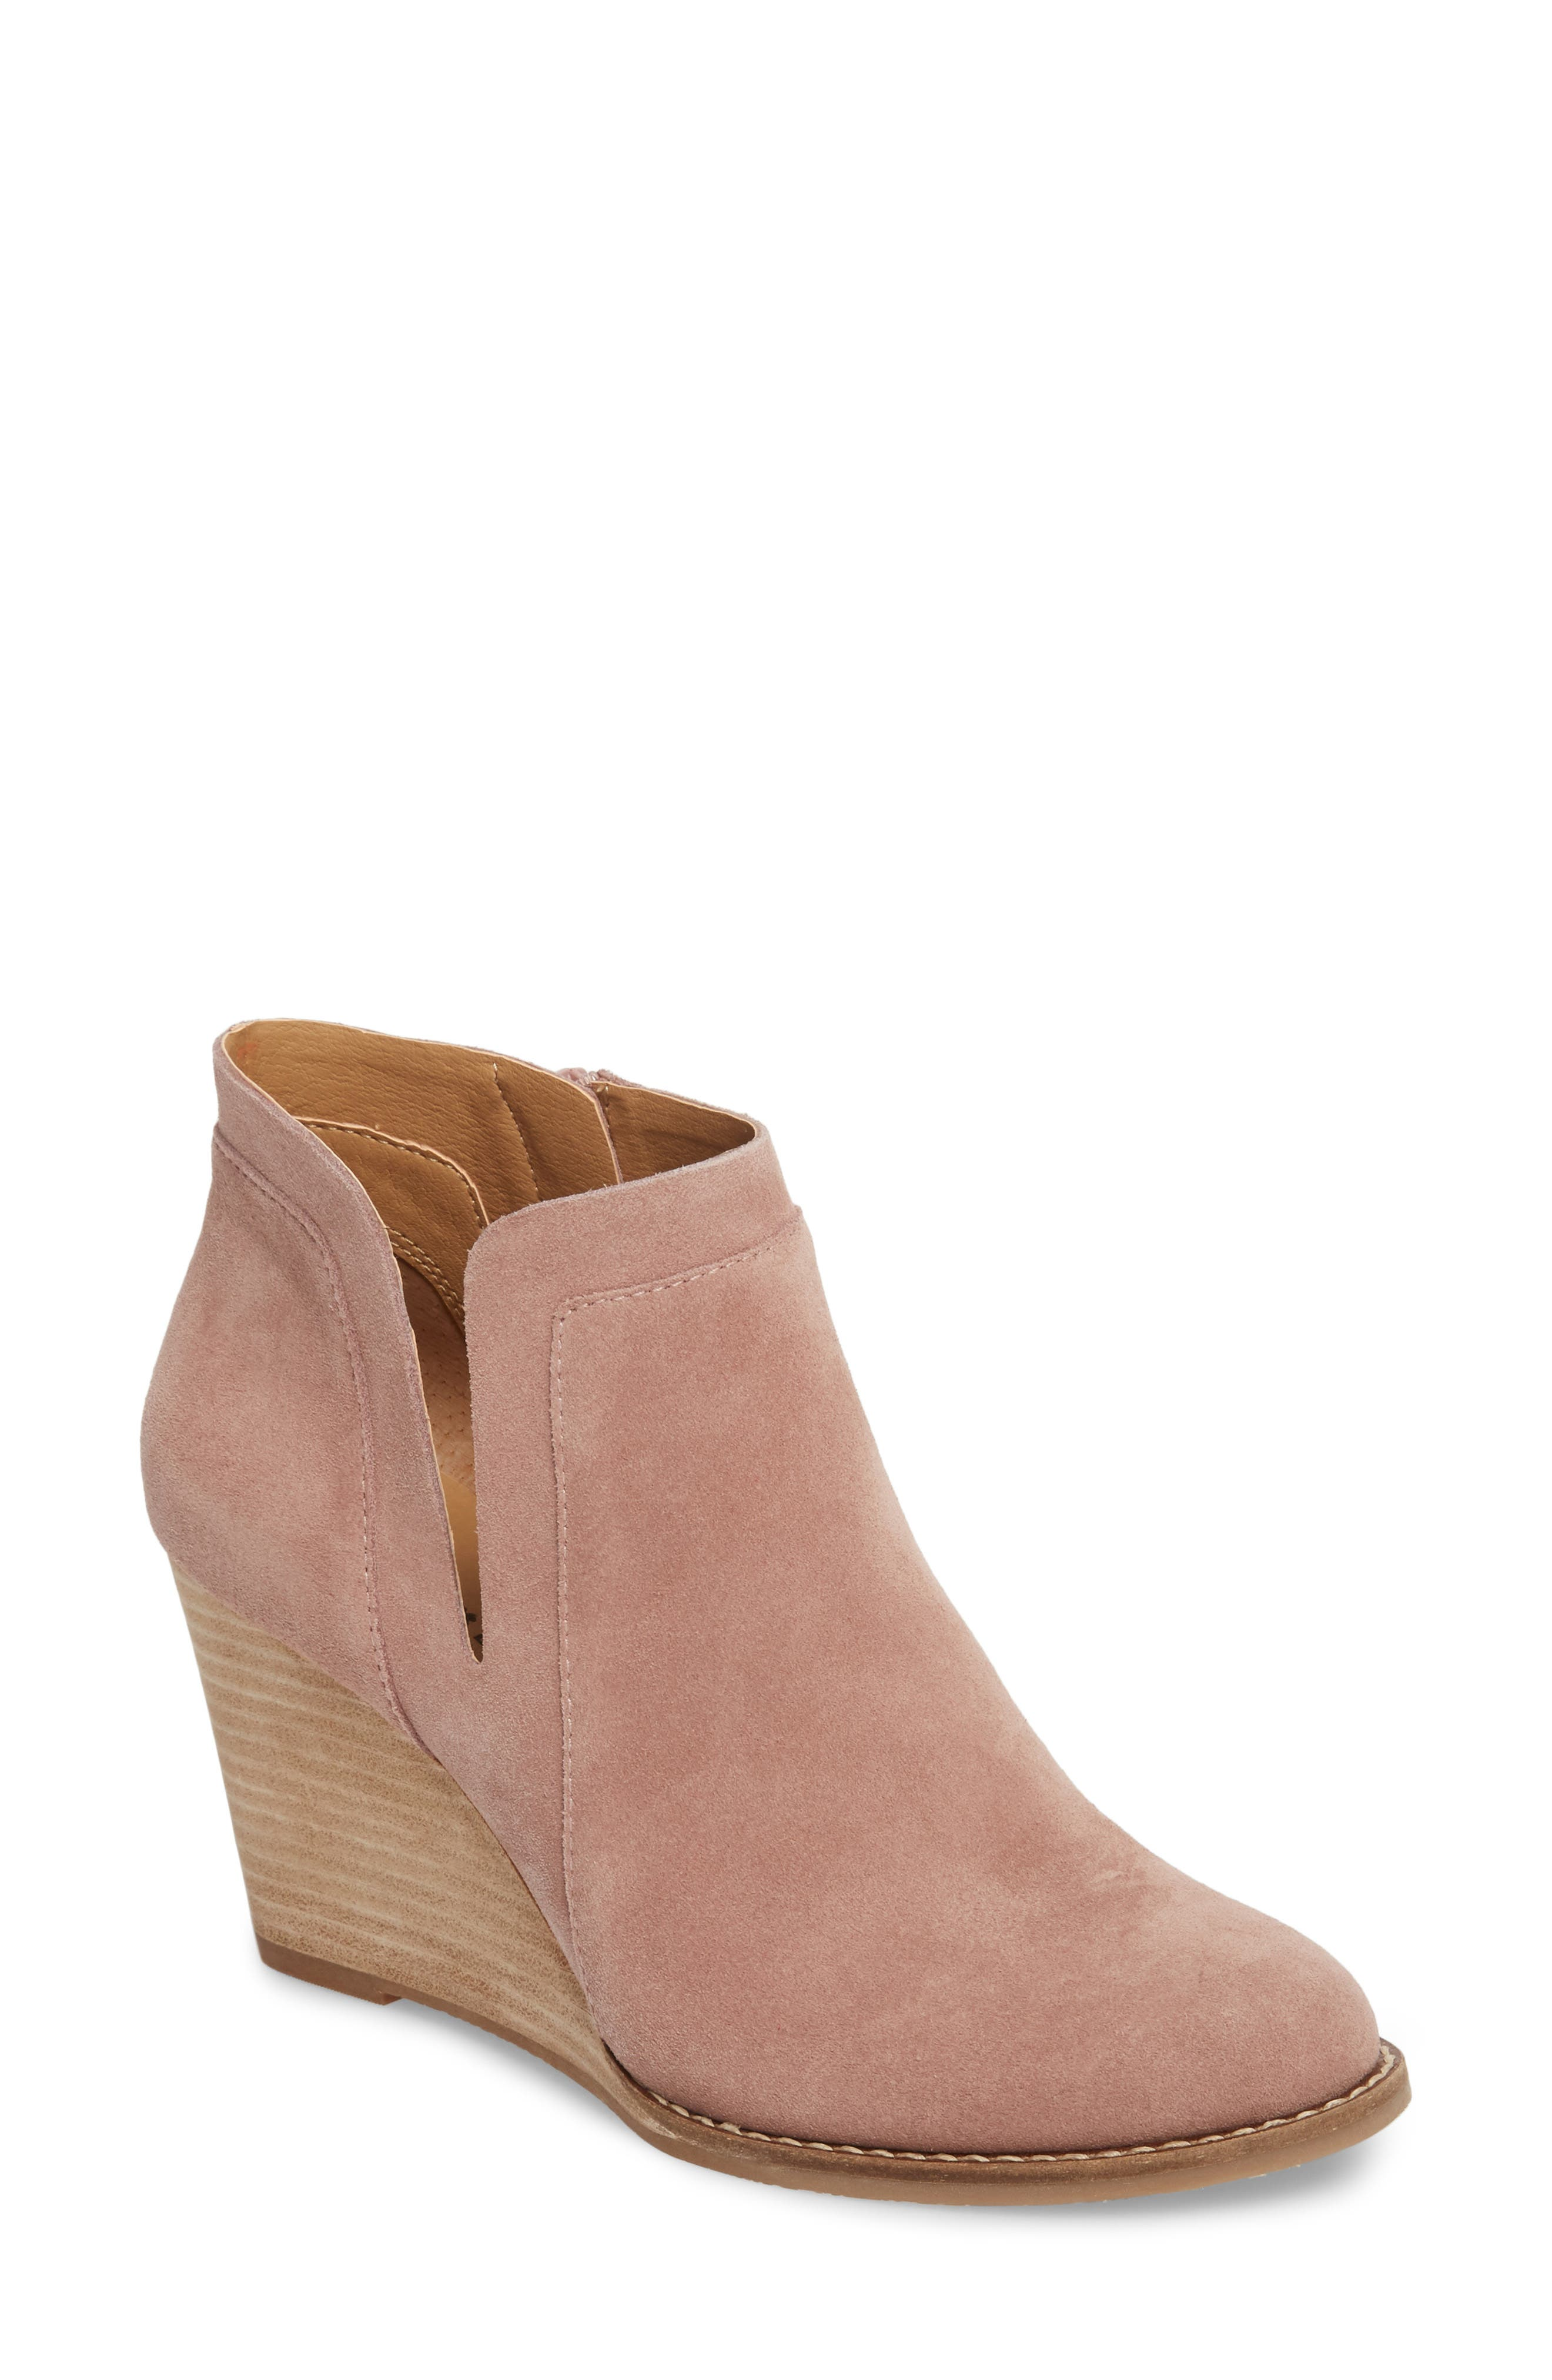 Lucky Brand Yabba Wedge Bootie, Pink